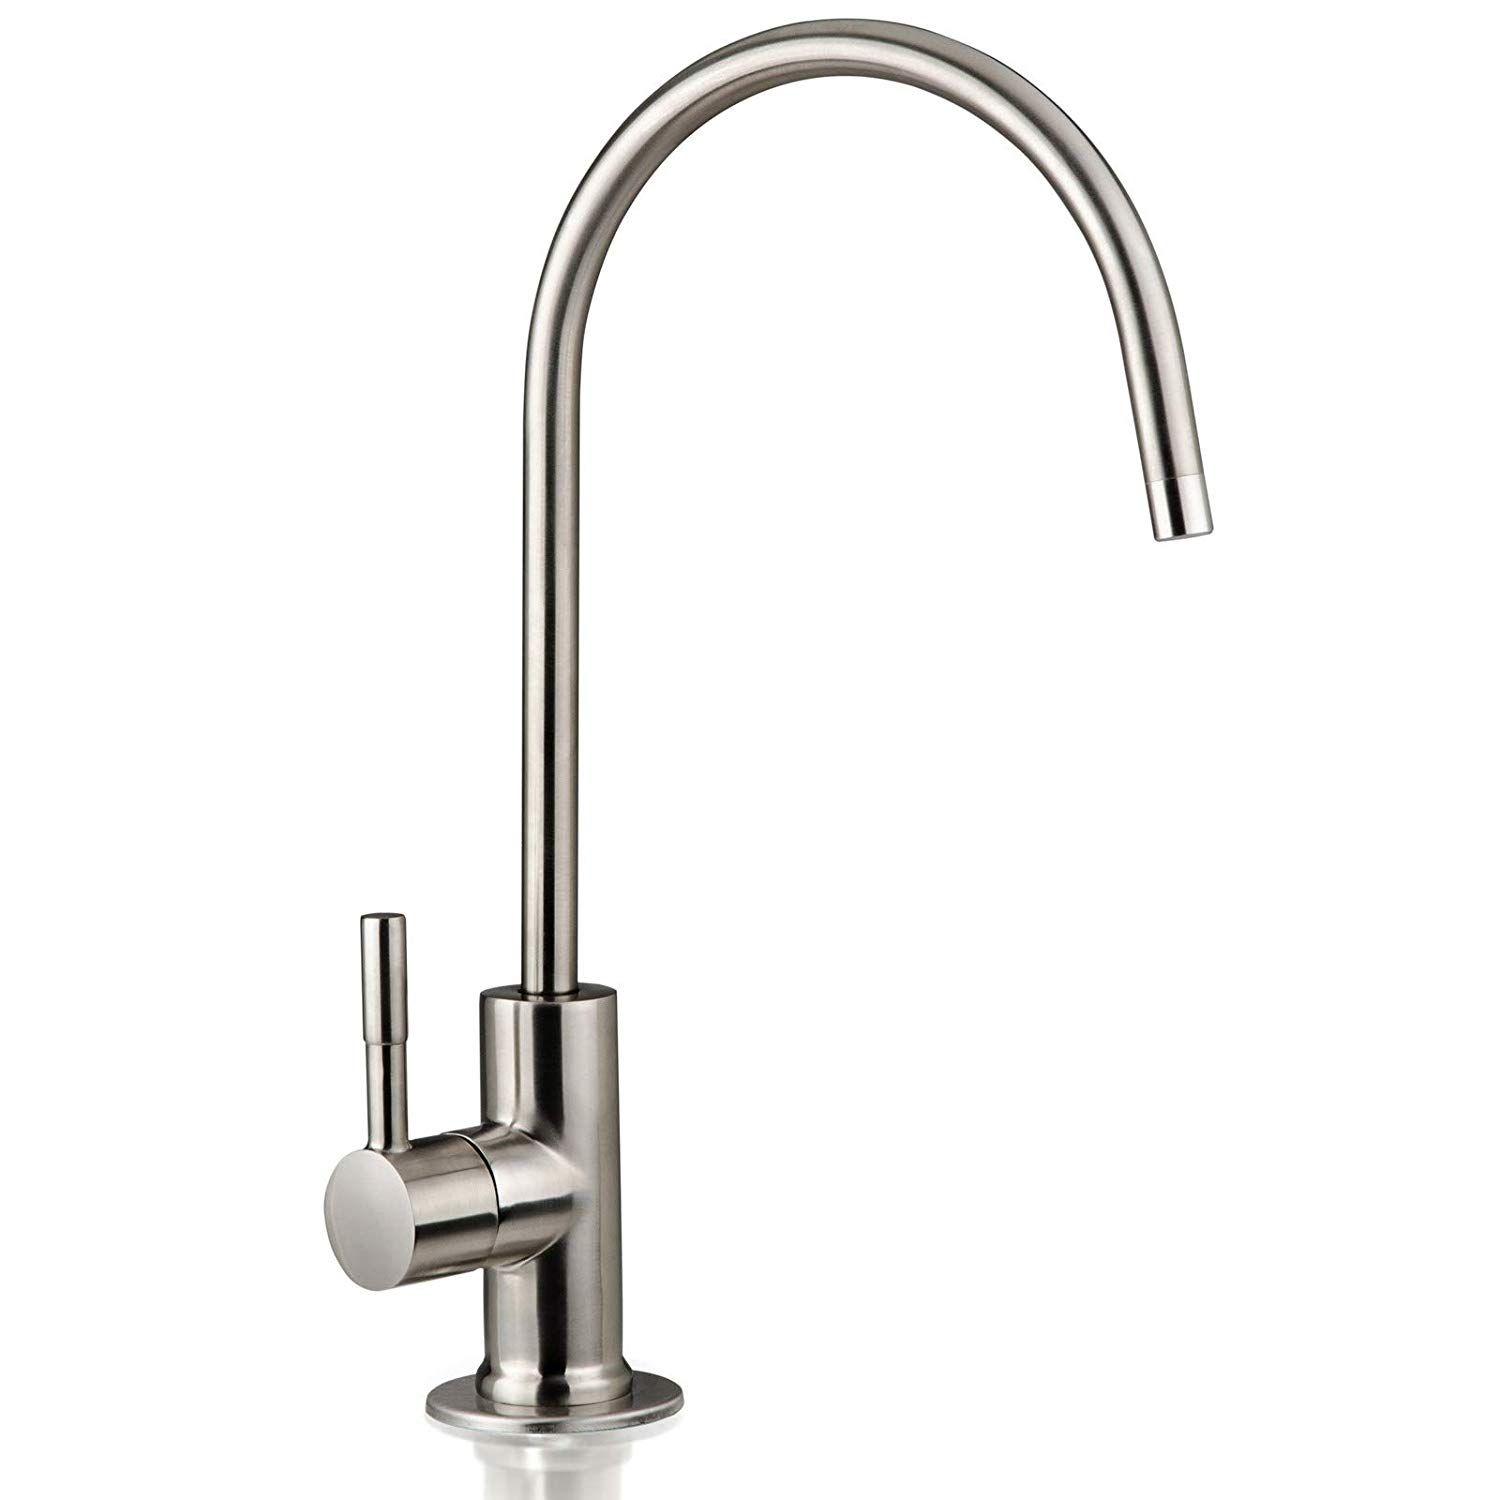 Ispring Ga1 Bn Heavy Duty Non Air Gap Drinking Faucet For Water With Images Water Faucet Faucet